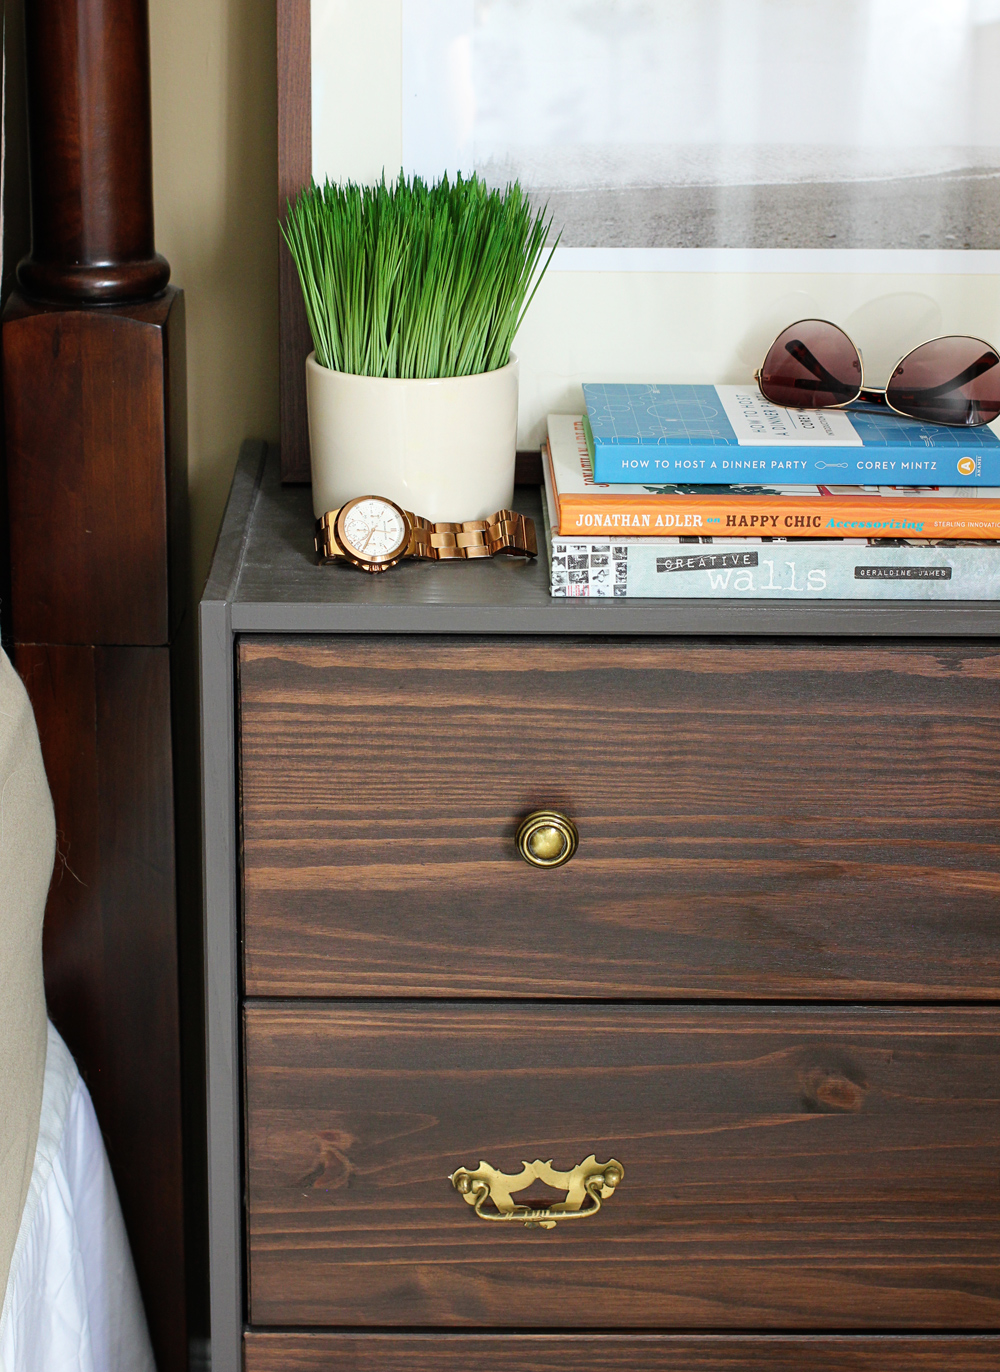 Ikea Rast Nightstand Hack - Brittany Stager